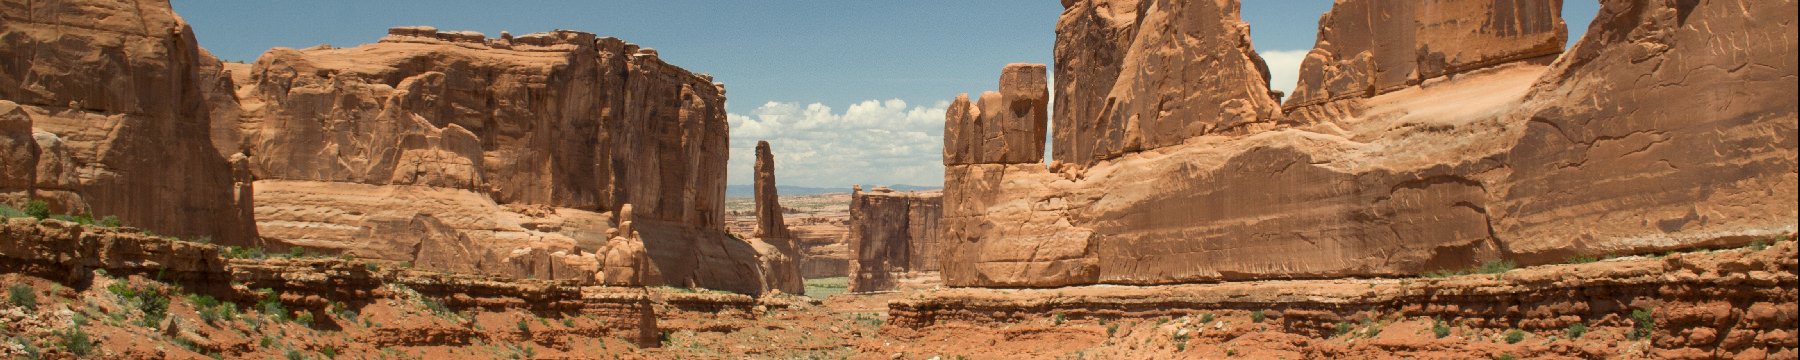 Panorama Arches National Park